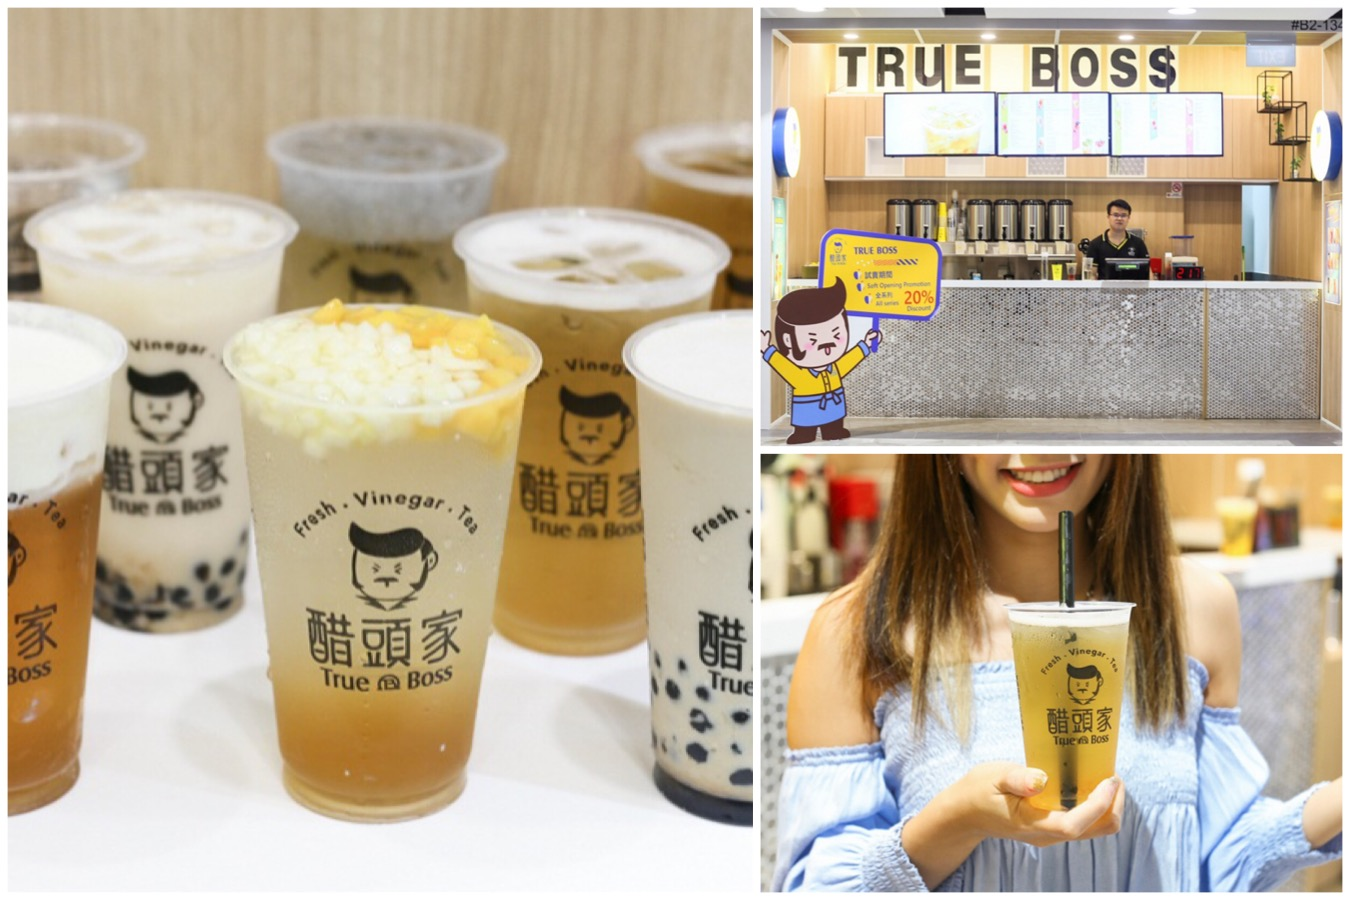 True Boss 醋頭家 – Popular Fruit Vinegar Tea Shop From Taiwan Opens At Northpoint City